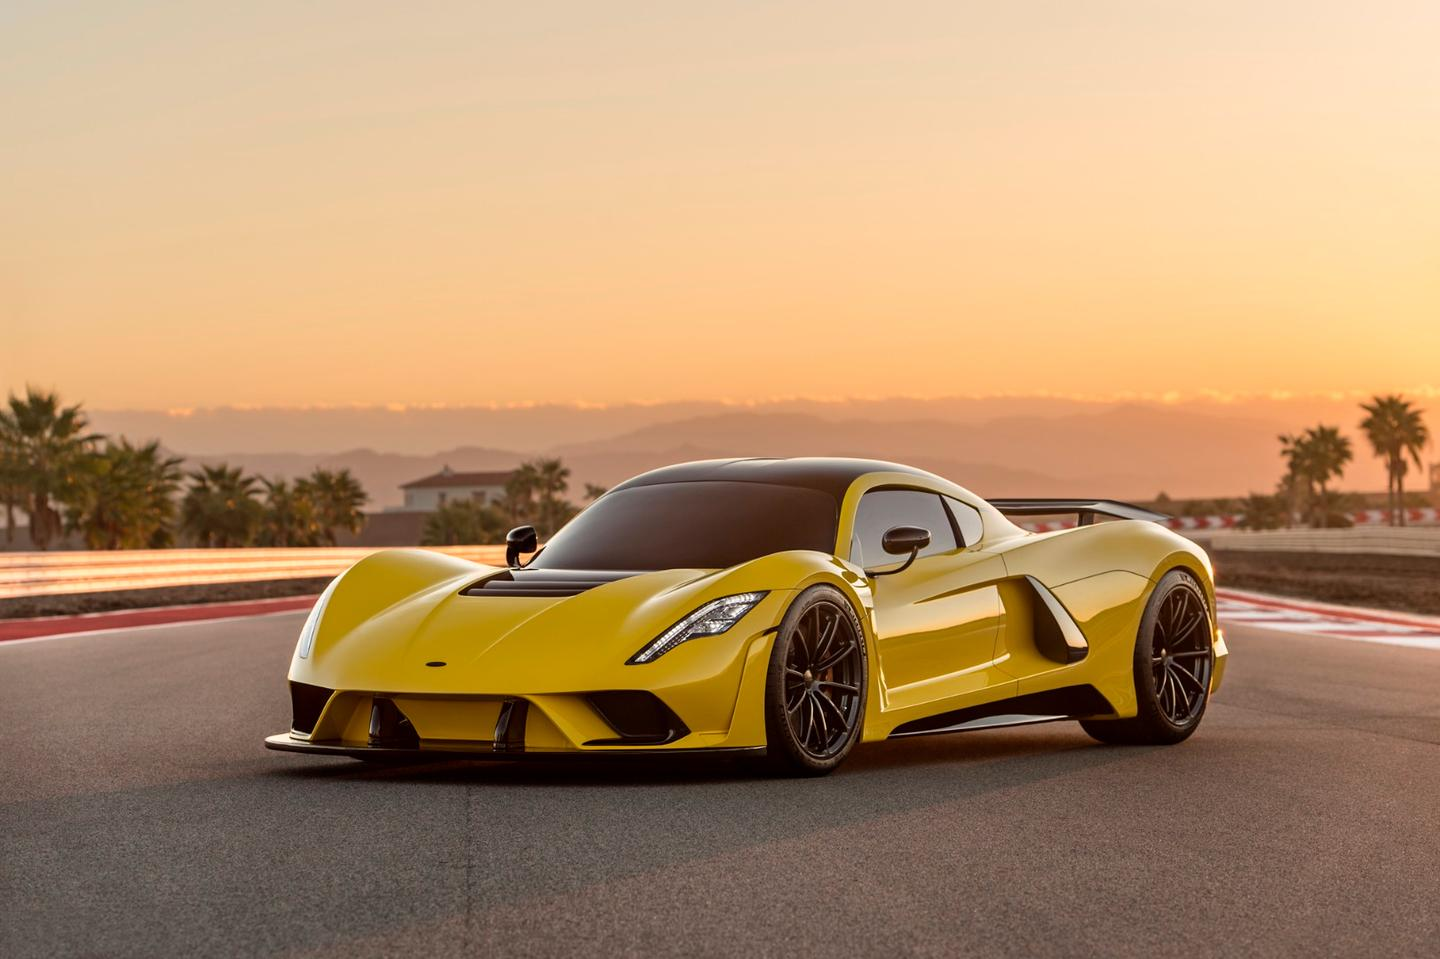 It was a long time coming, but Hennessey's new Venom F5 is finally here